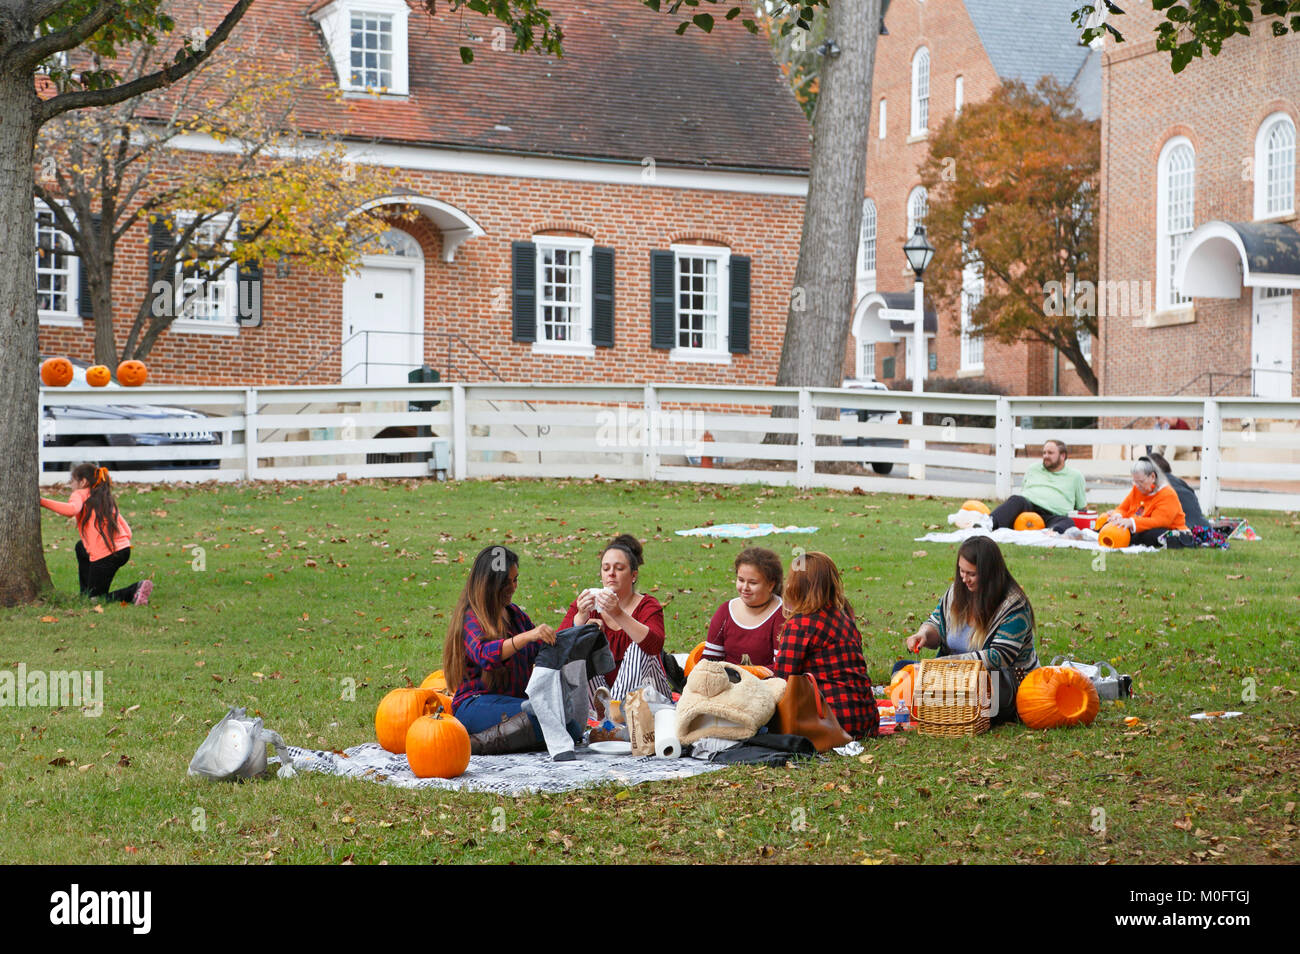 People having picnic and carving pumpkins at the yearly pumpkin carving event in Old Salem Stock Photo